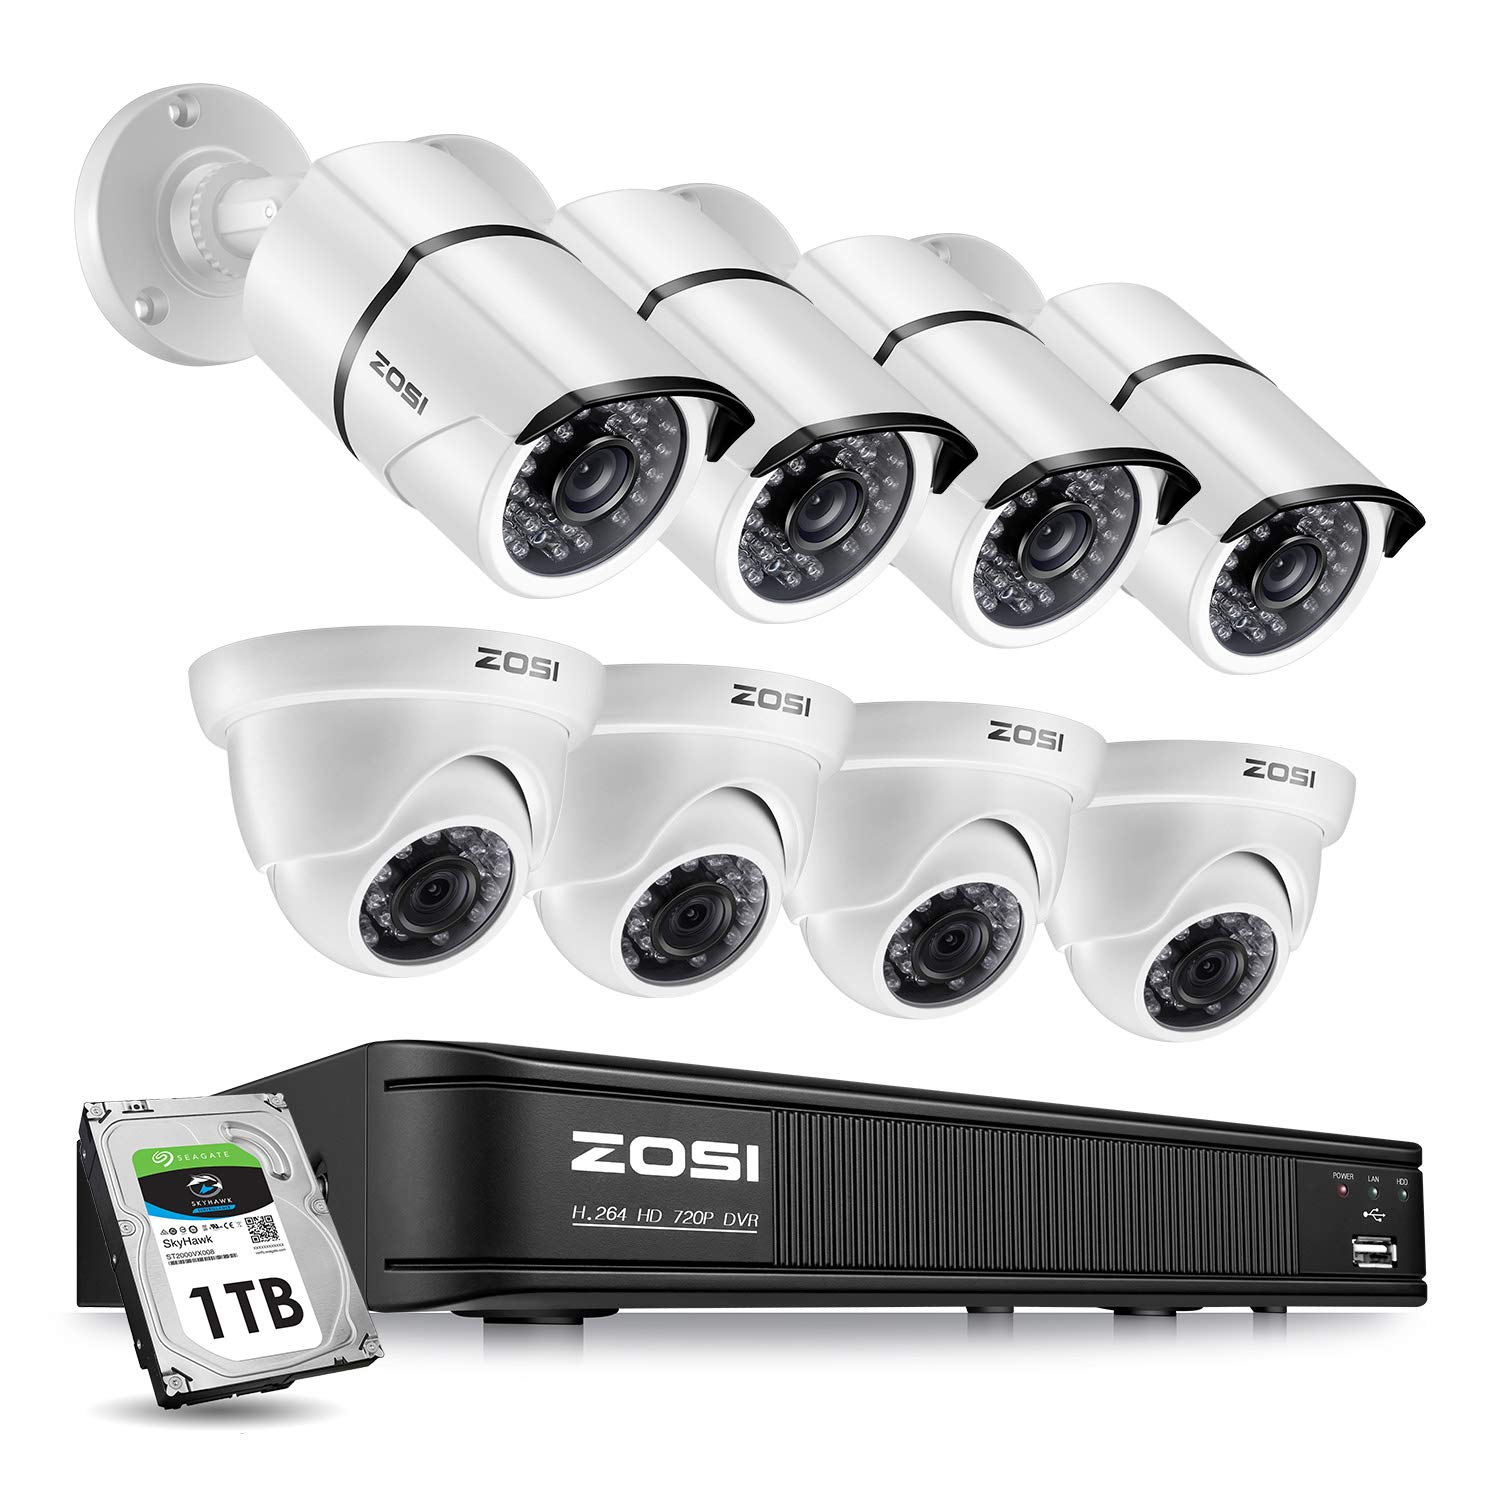 ZOSI Security Camera System 8 Channel,1080p Lite Surveillance DVR Recorder  with Hard Drive 1TB and (8) 720p Weatherproof CCTV Camera